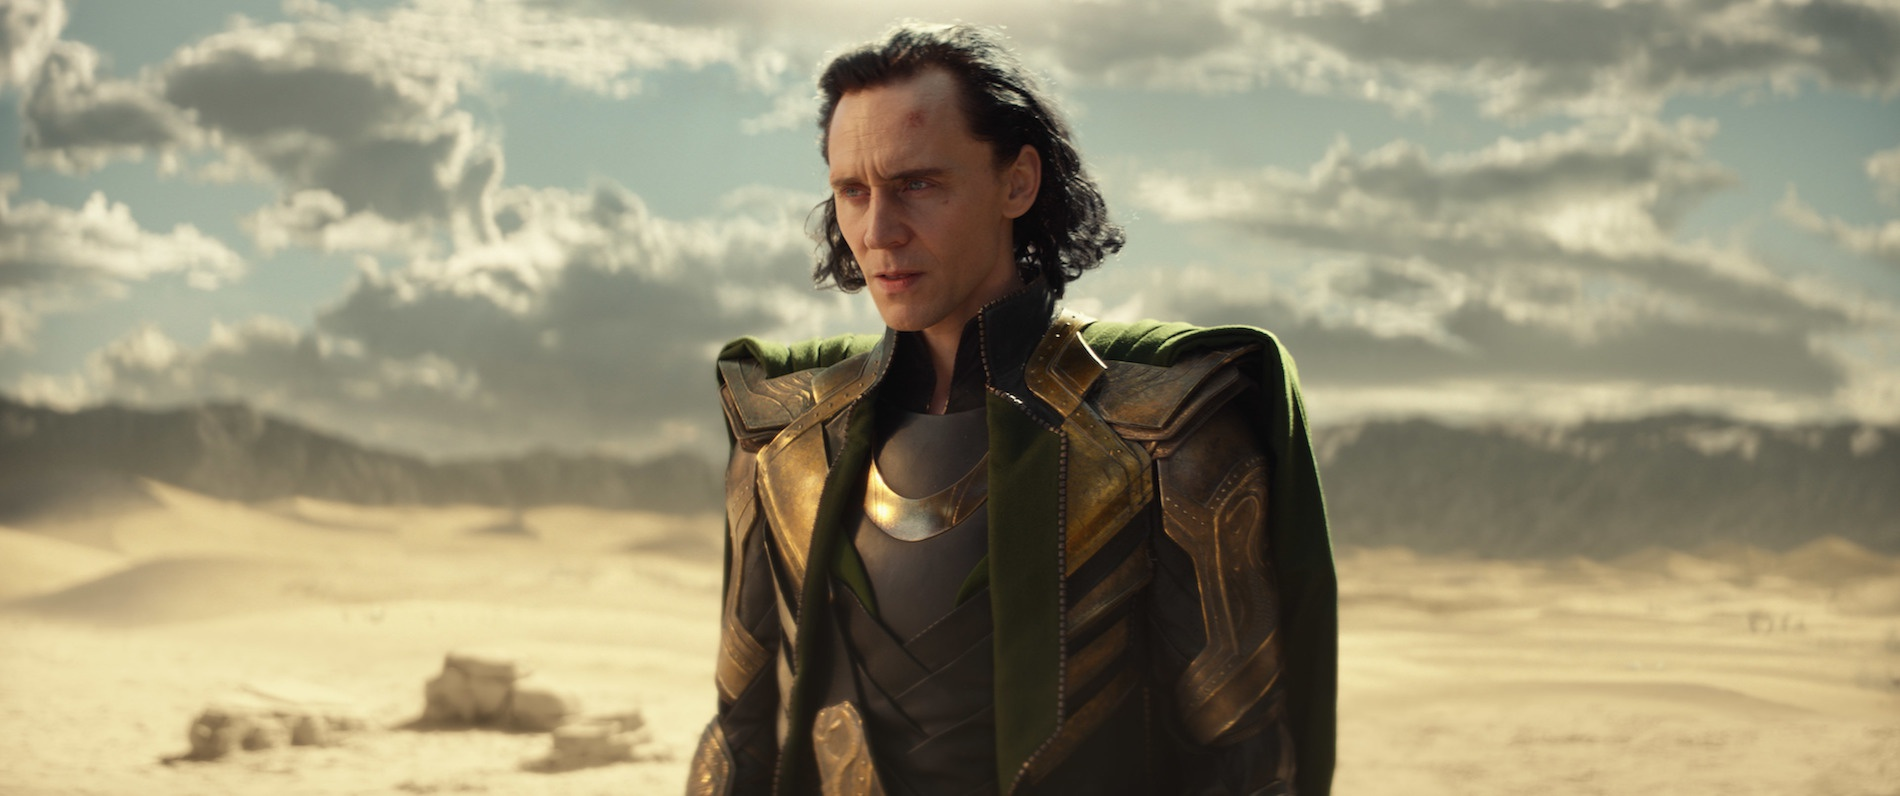 'Loki' Director Kate Herron on Tom Hiddleston + Why You Can't 'Wait for Permission'